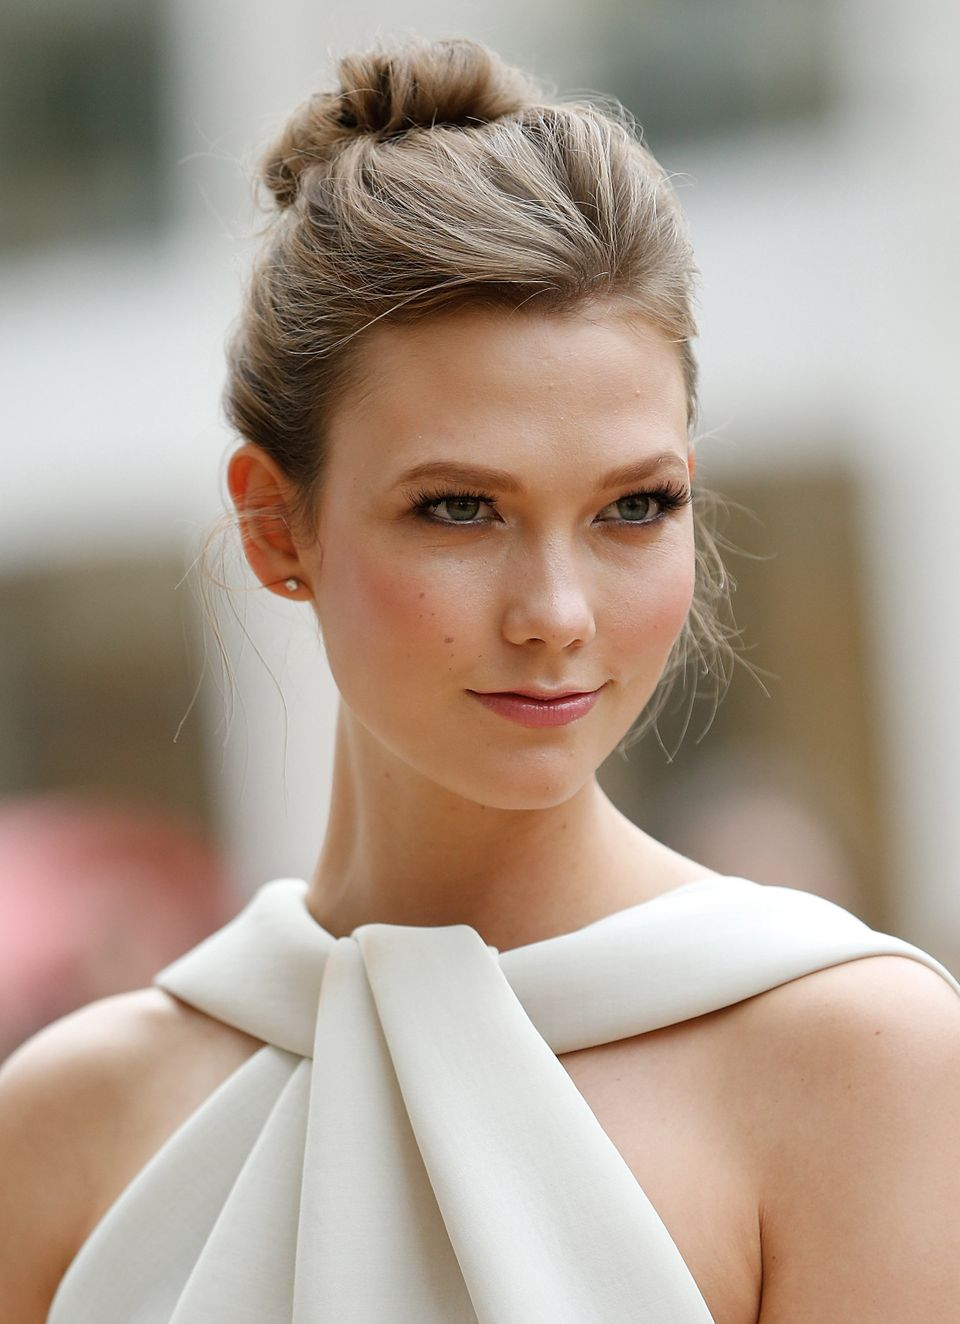 Karlie Kloss' not-too-perfect ballet bun is a perfectly elegant wedding style.